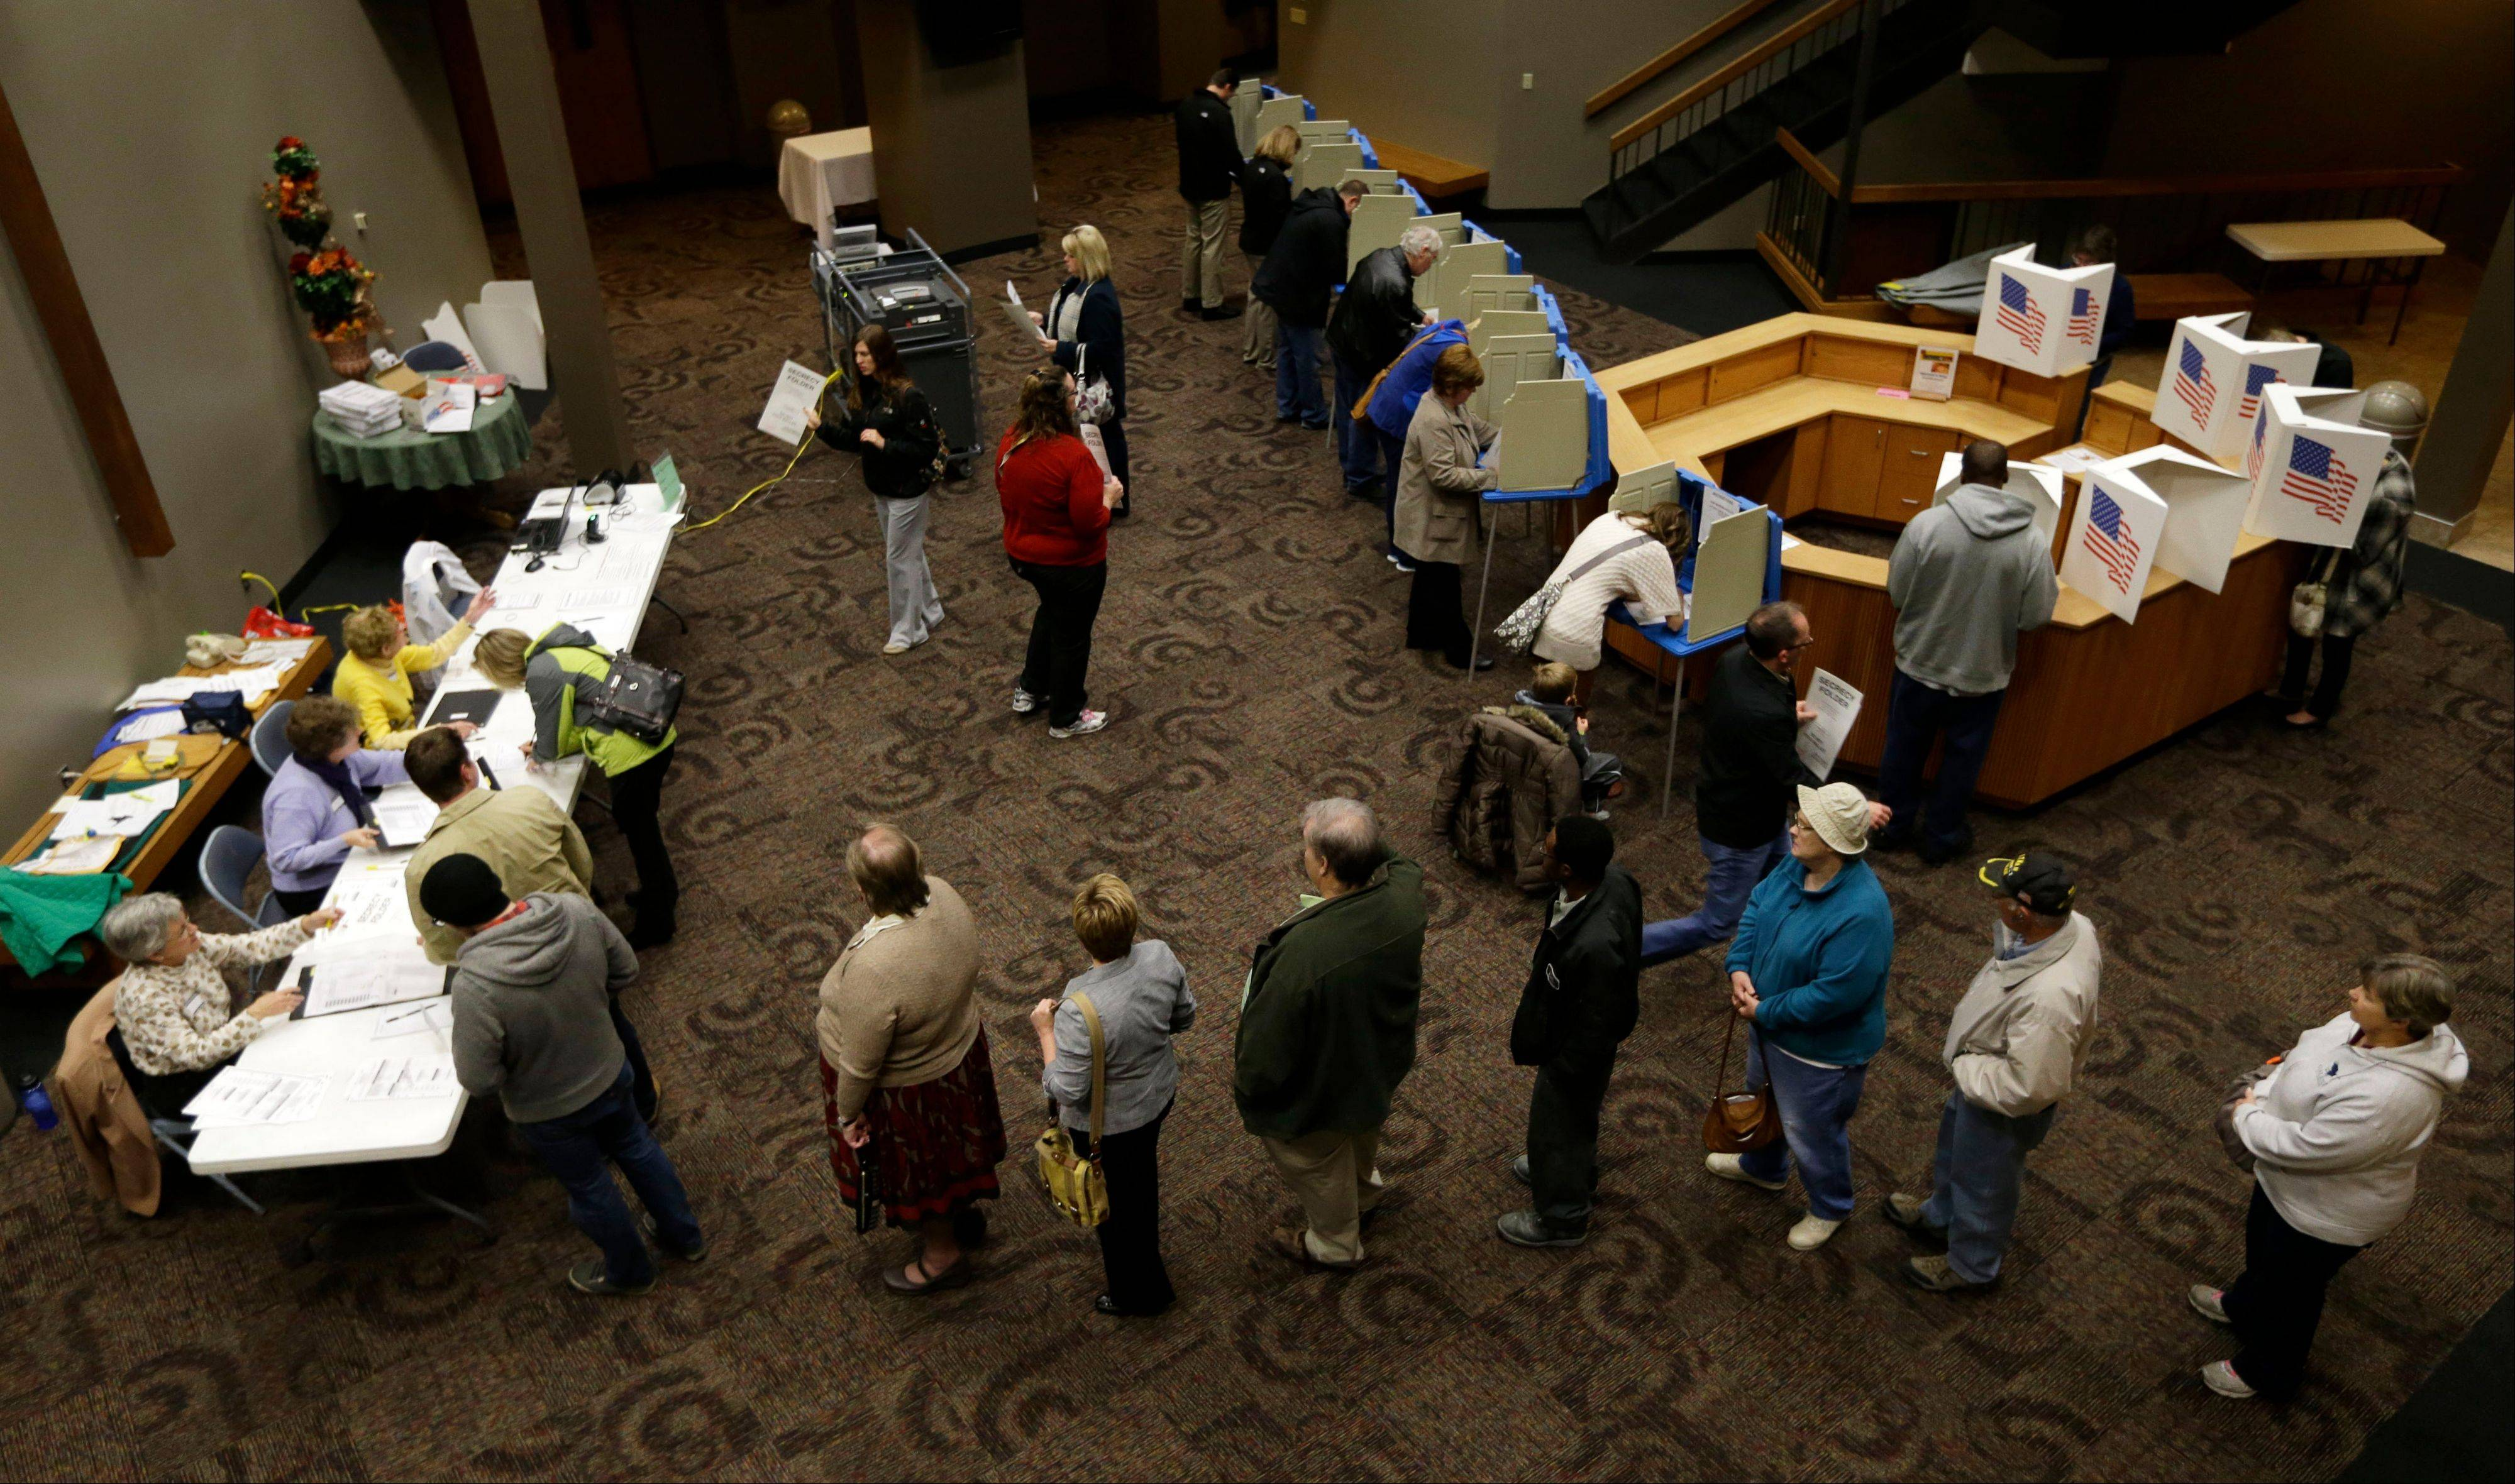 Voters in Precinct 39 wait in line for their ballots before casting their vote on Election Day, Tuesday, Nov. 6, 2012, at the First Church of the Open Bible in Des Moines, Iowa.